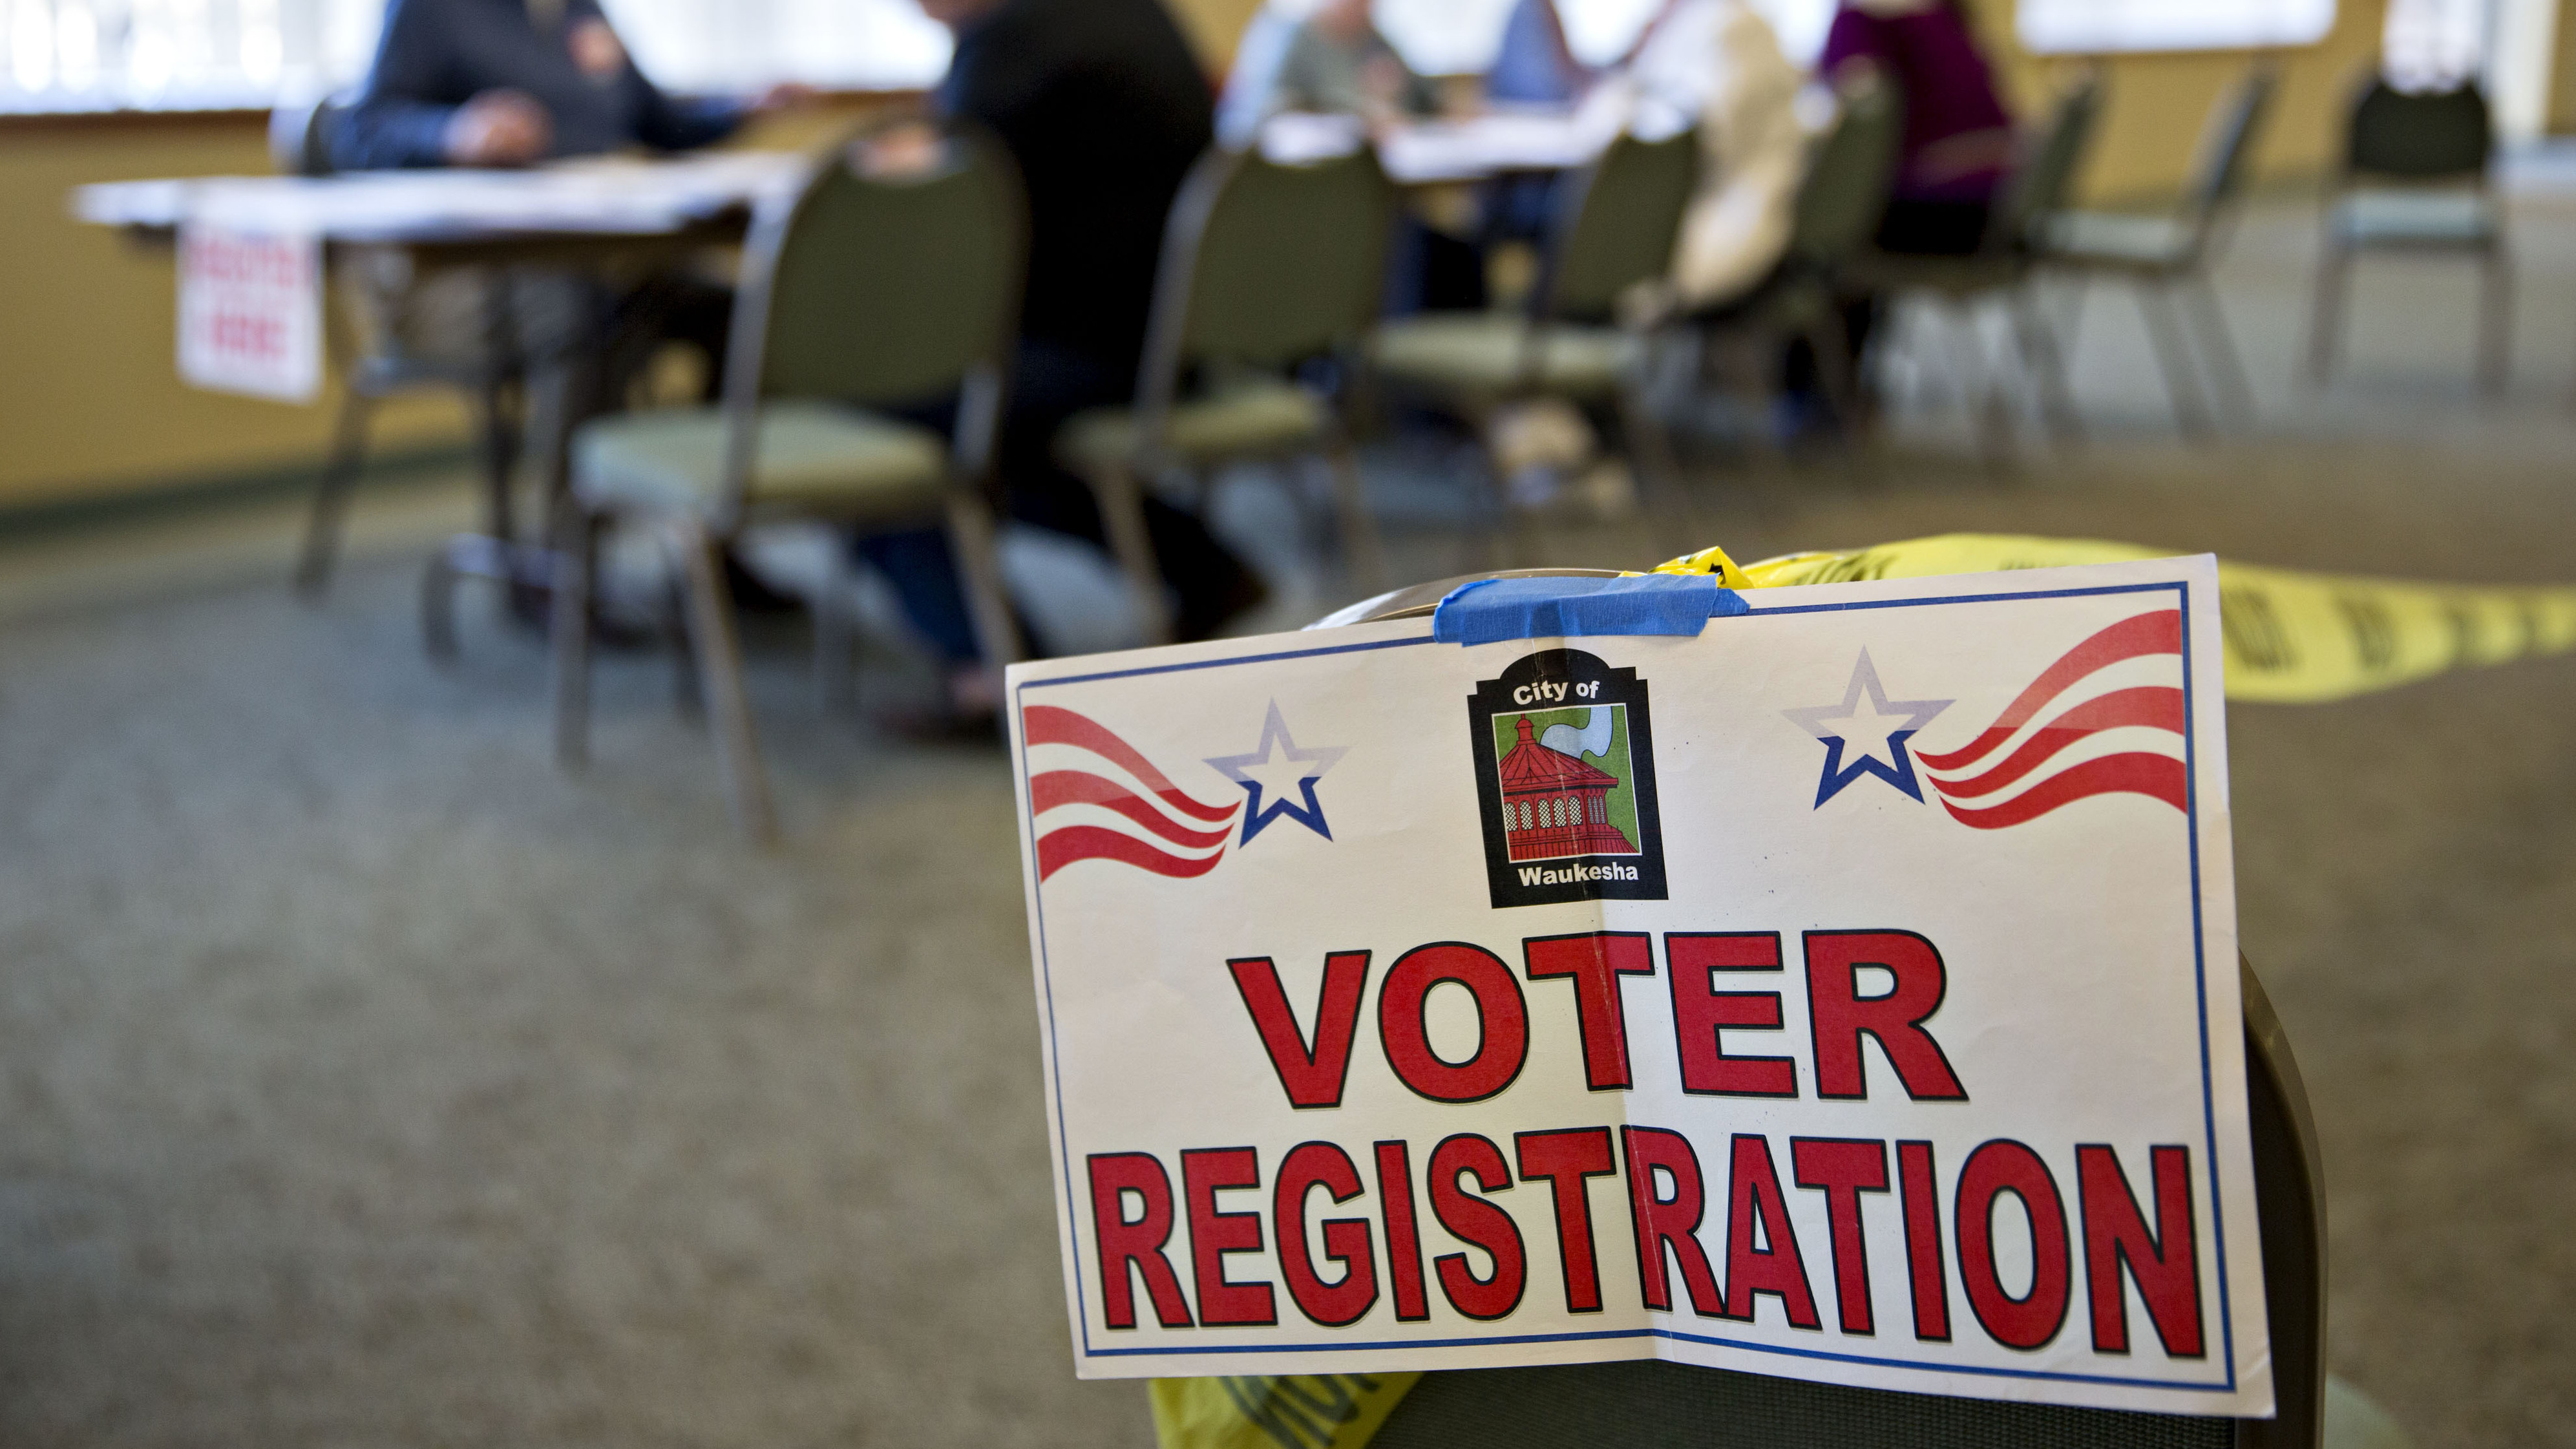 A voter registration sign hangs near a table where residents fill out paperwork at a polling location during the presidential primary vote in Waukesha, Wis., on April 5. (Photo by Daniel Acker/Bloomberg via Getty Images)